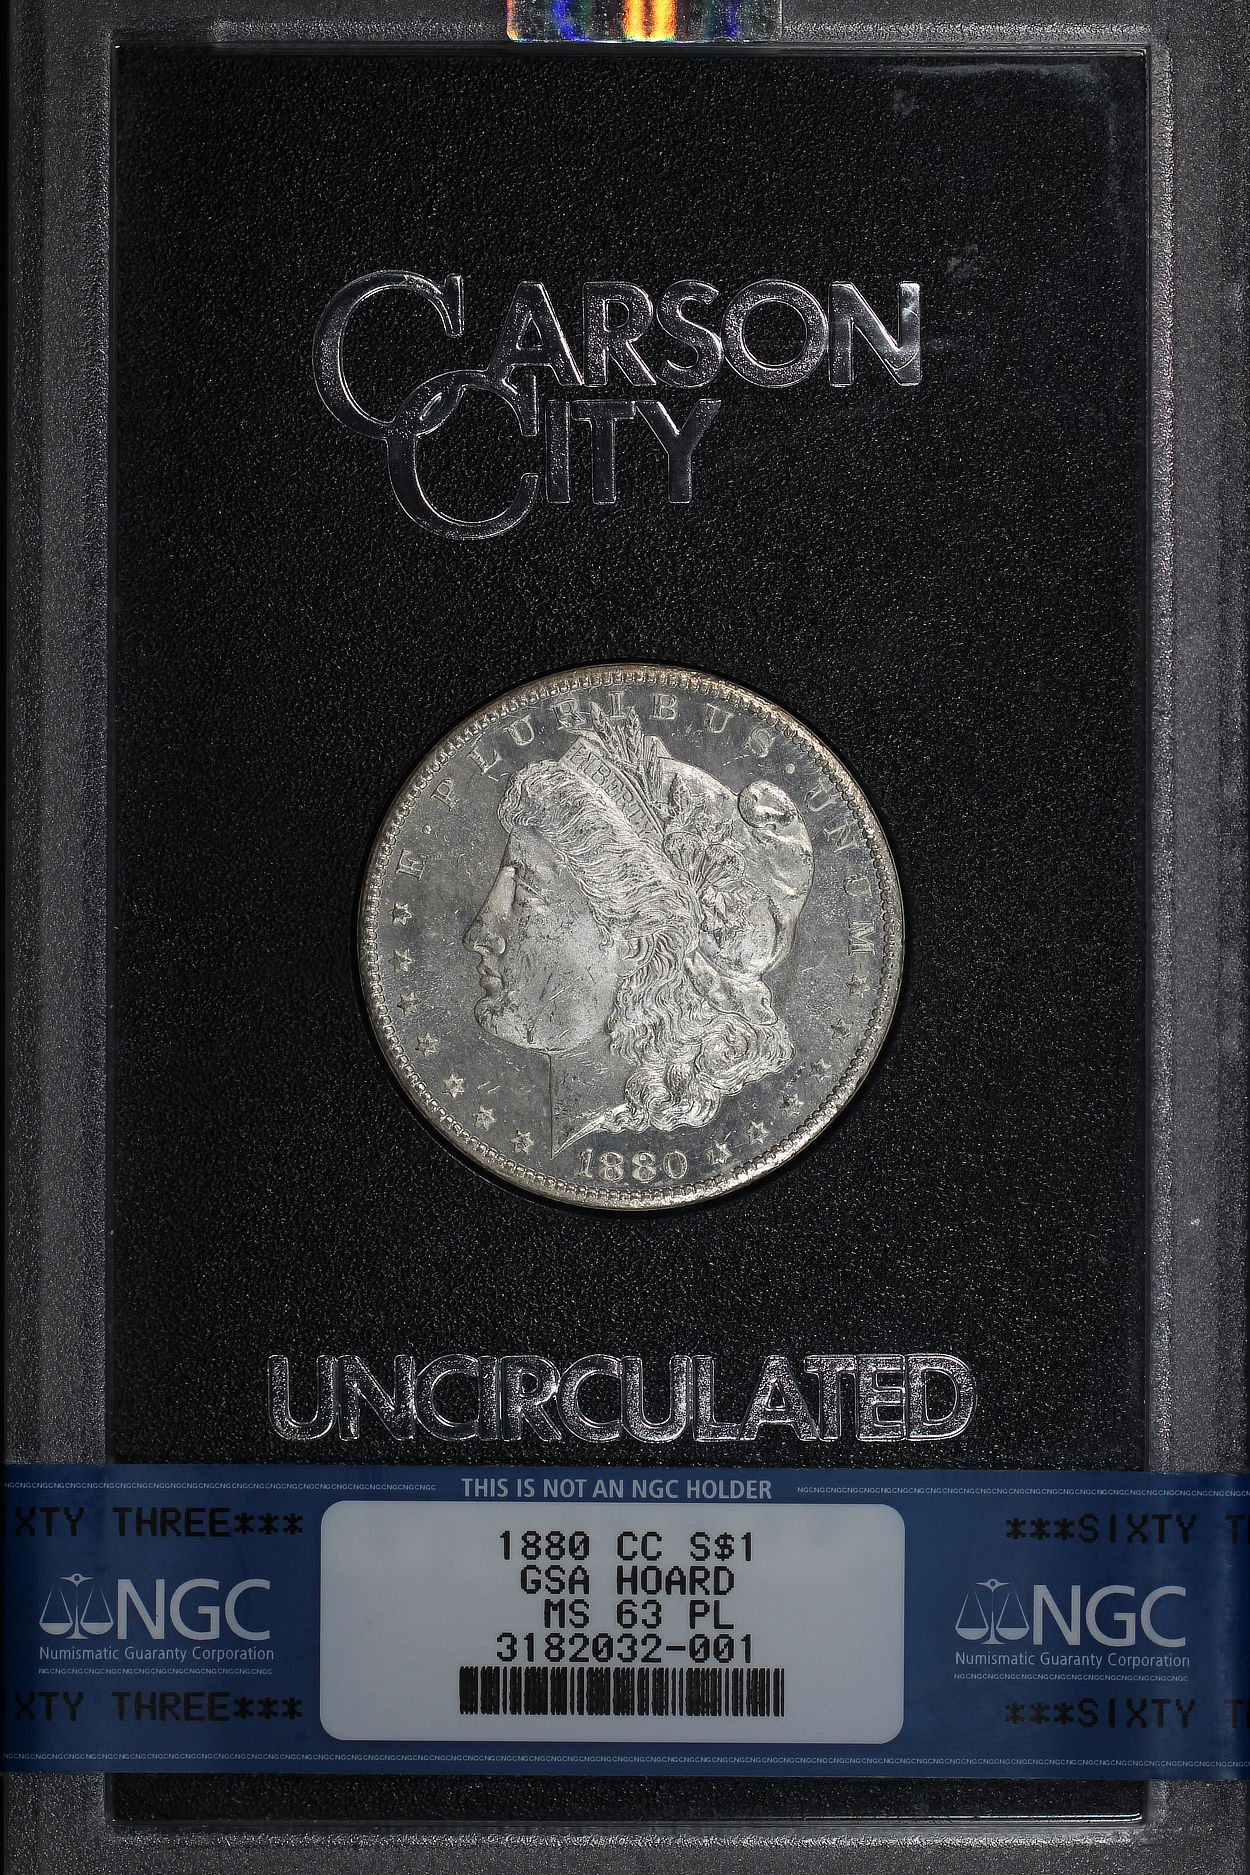 Obverse of 1880-CC GSA Morgan Dollar NGC MS-63 PL